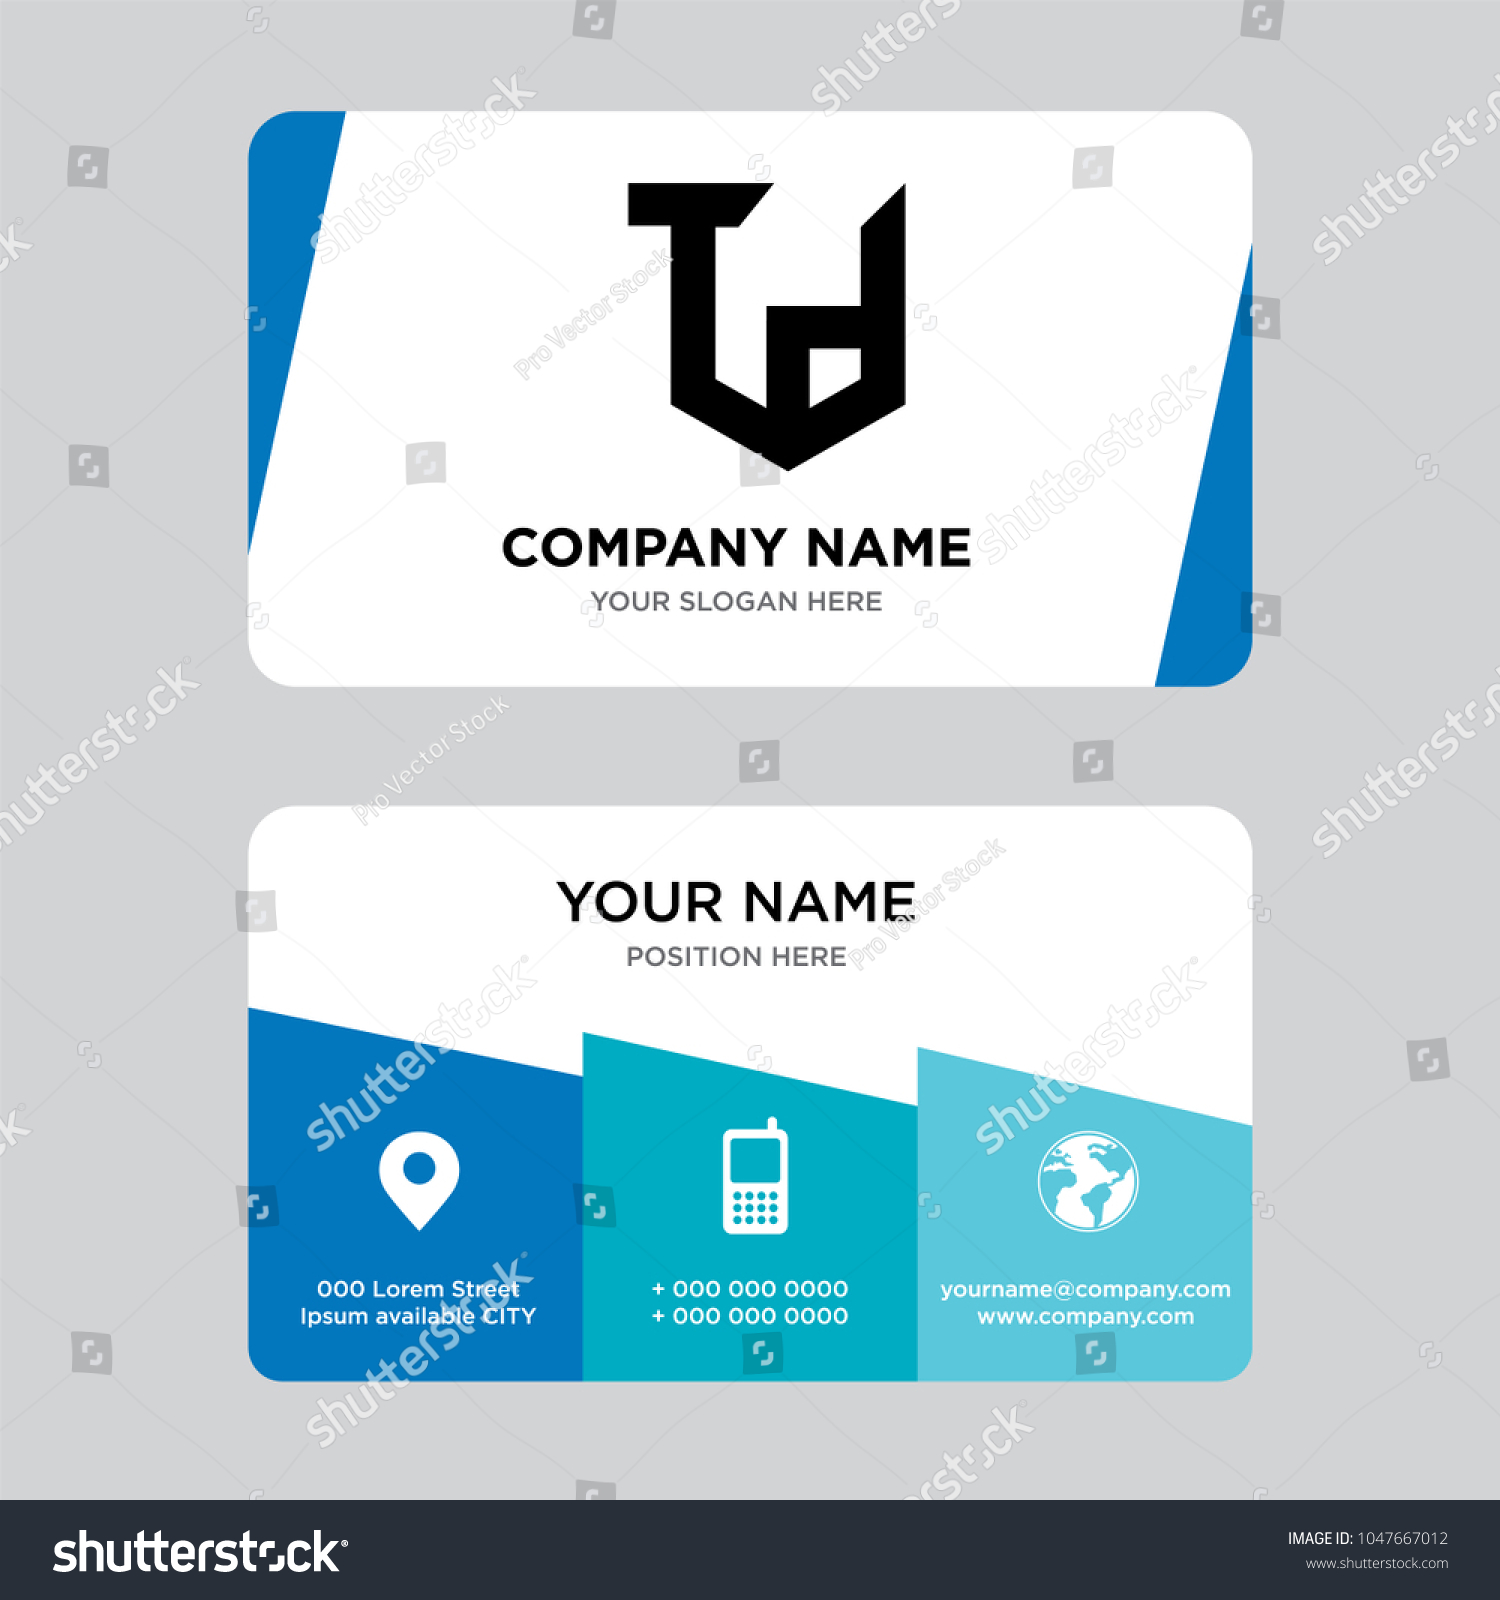 Td Business Card Design Template Visiting Stock Vector HD (Royalty ...